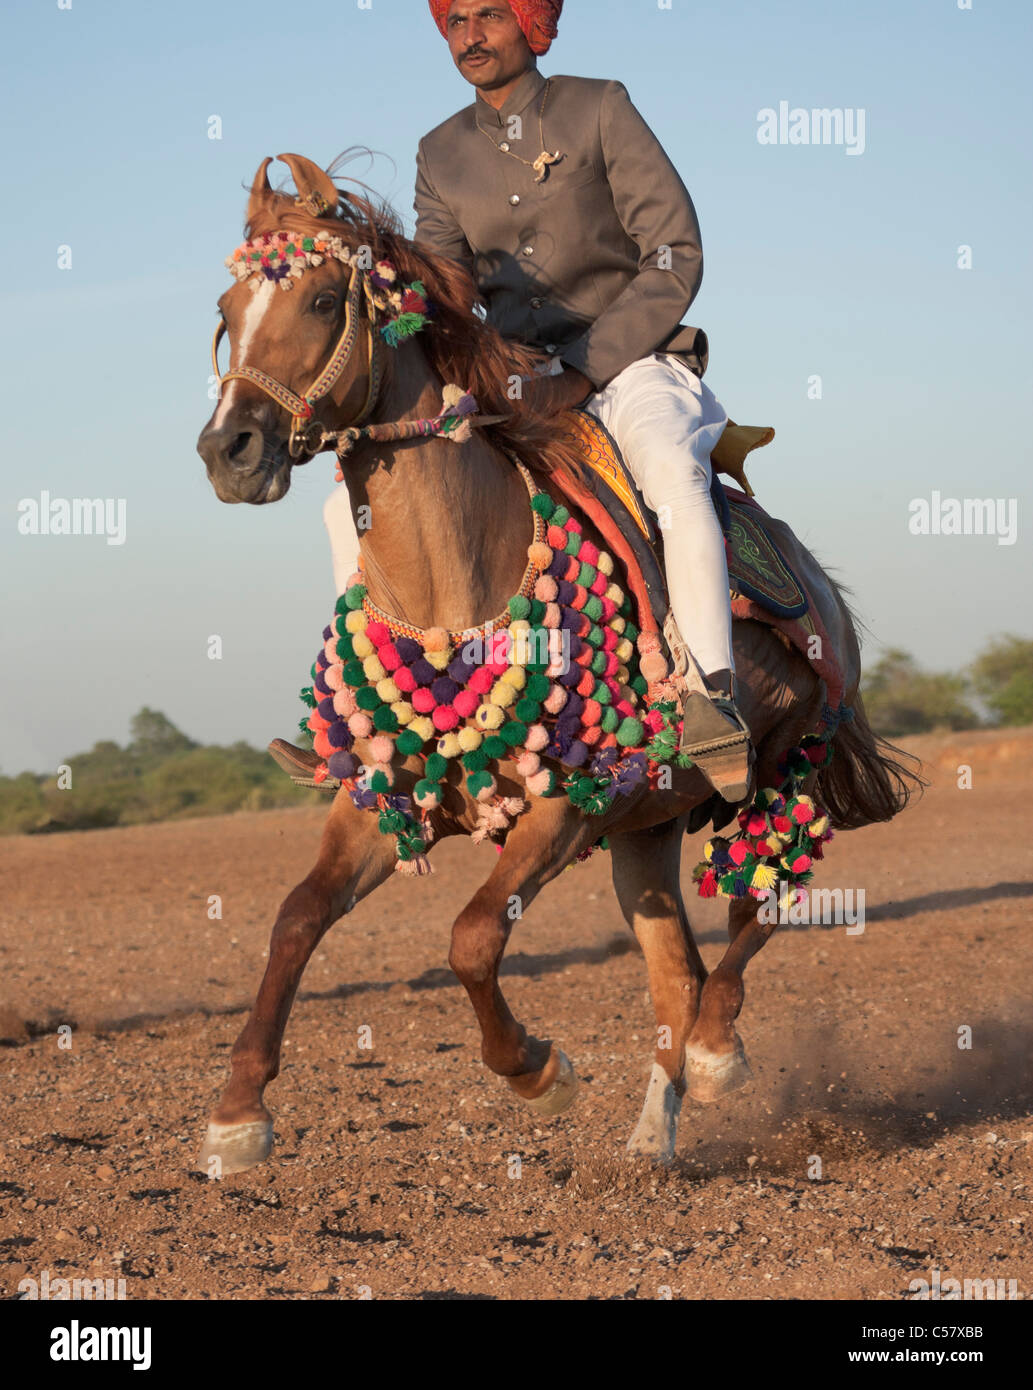 Horse Rider India Indian Tradition Rajasthan Man Stock Photo Alamy